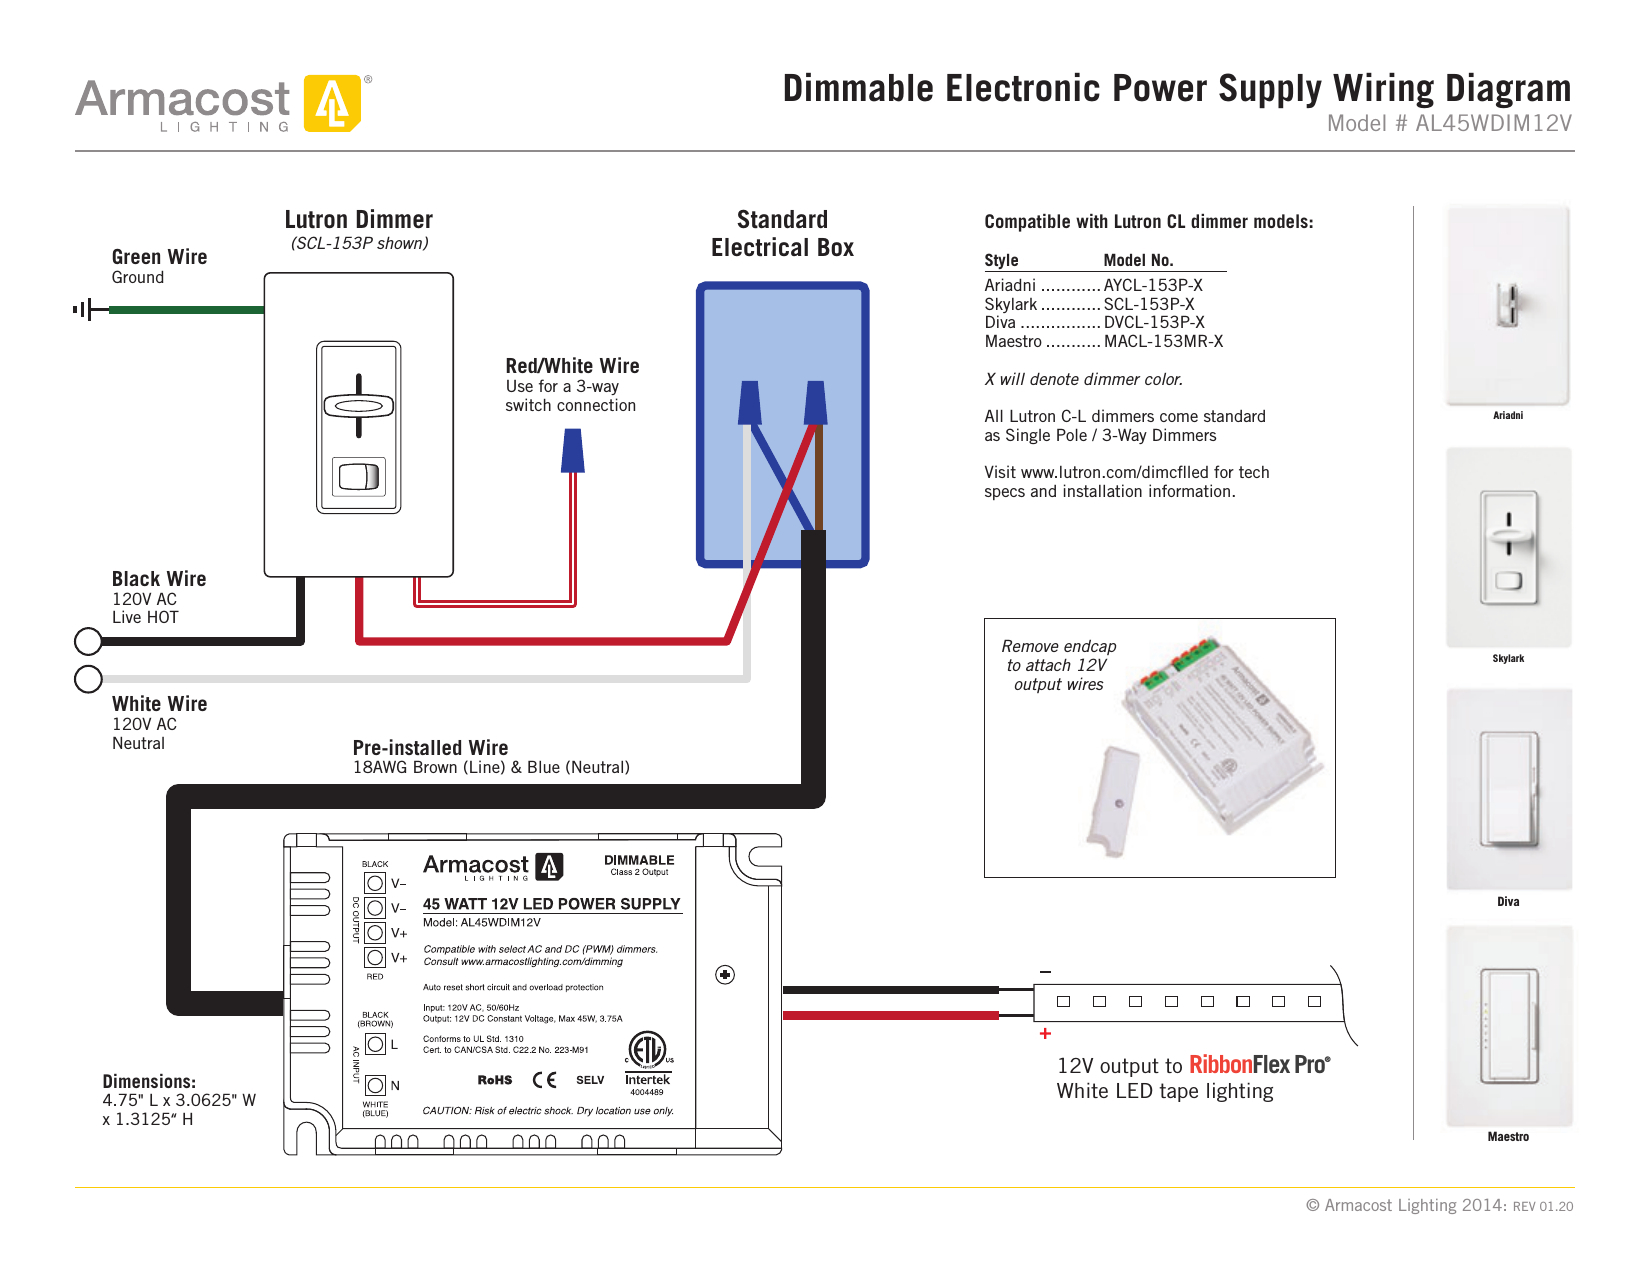 lutron cl dimmer wiring diagram Download-lutron diva cl wiring diagram Collection lutron skylark dimmer wiring diagram Unique Lutron Dimmer Switch 8-d